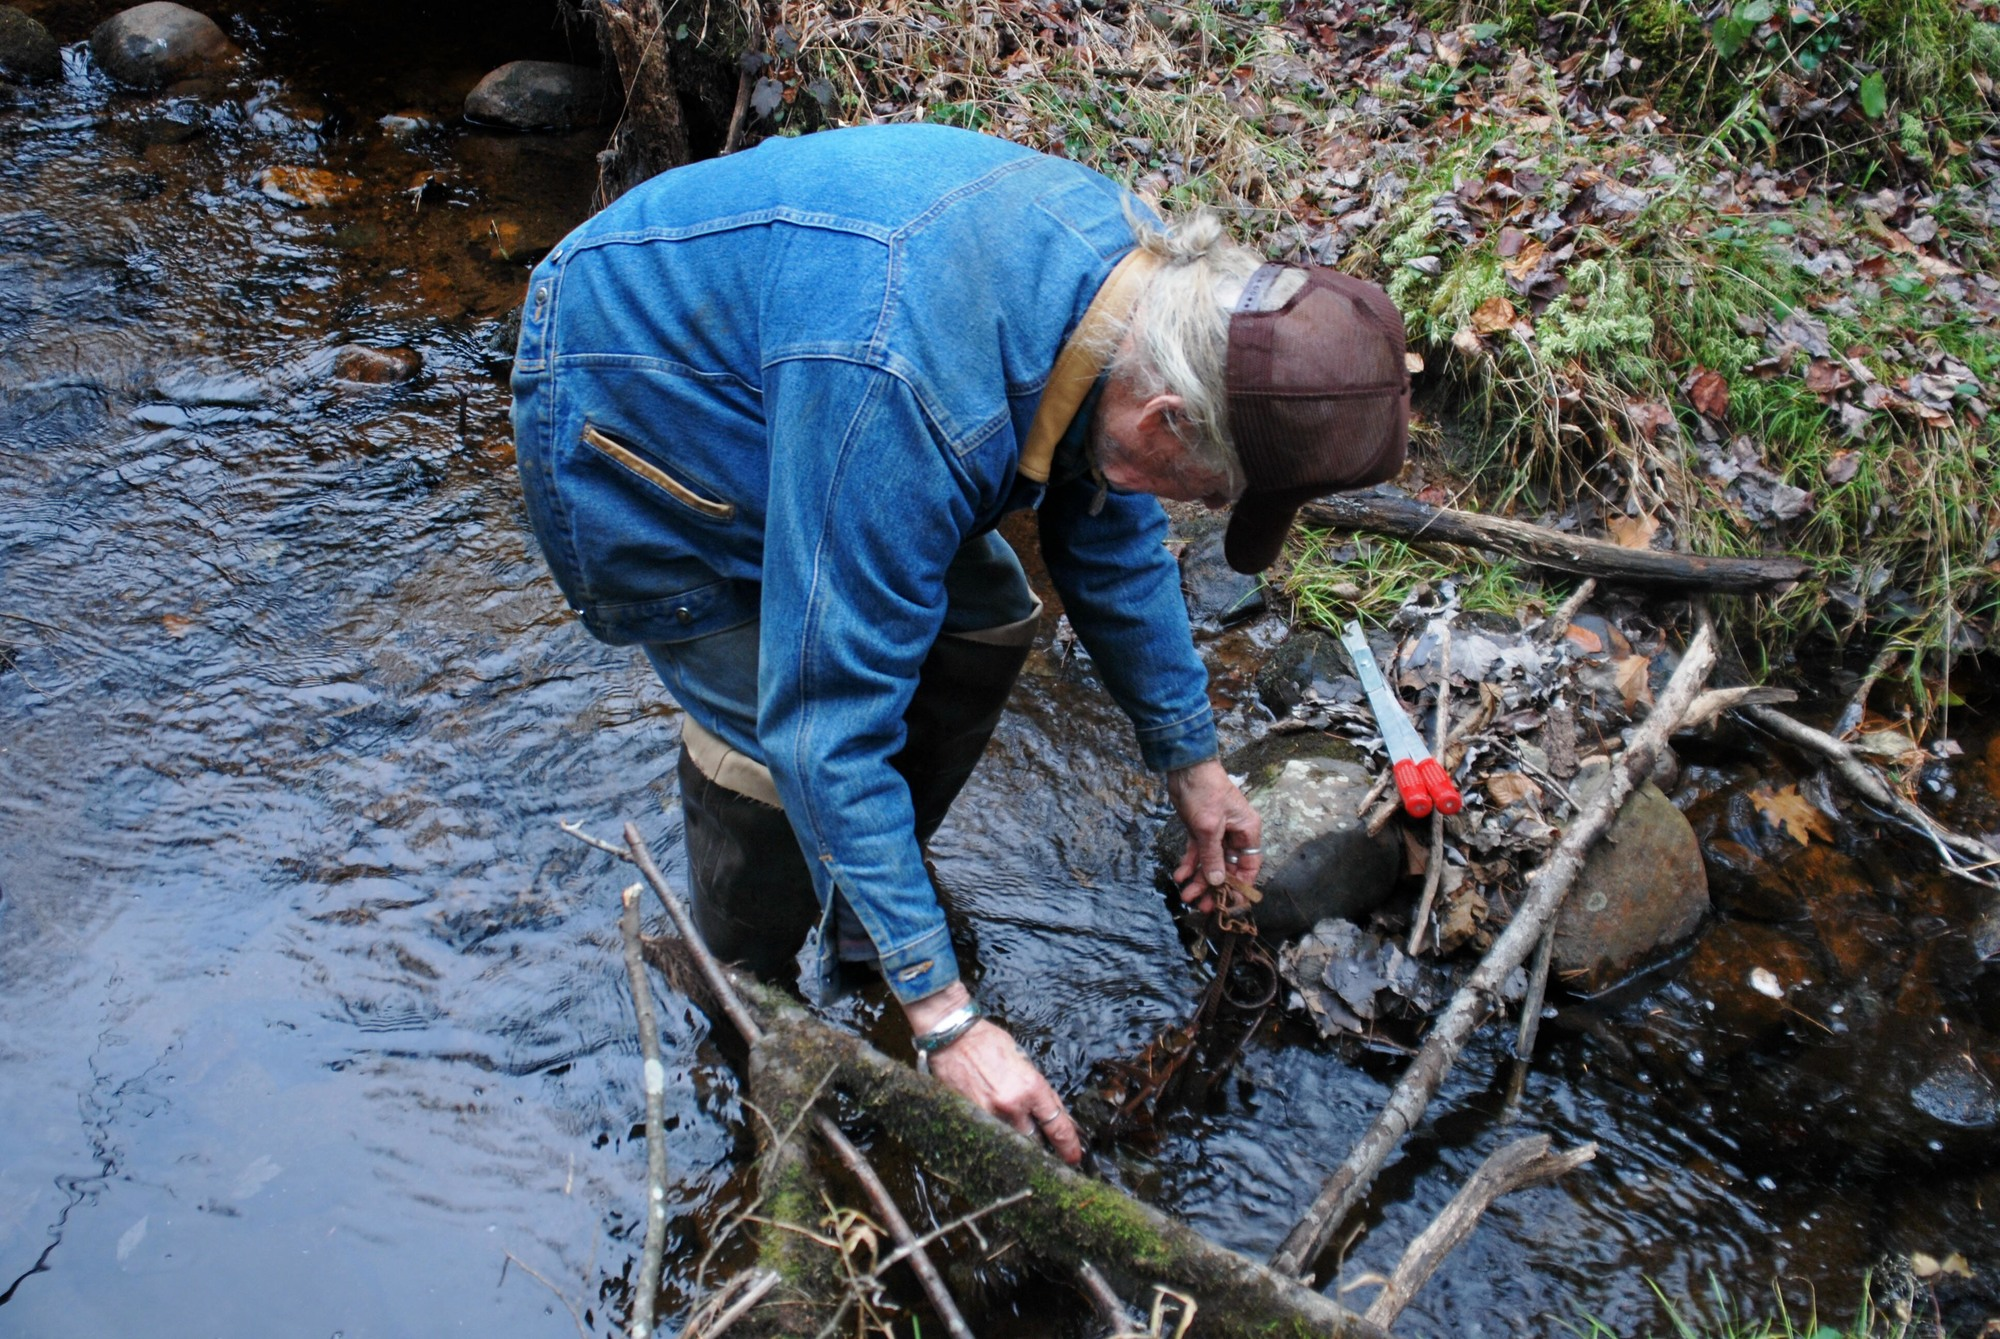 Late trapping legend Johnny Thorpe works to set a trap in a stream.